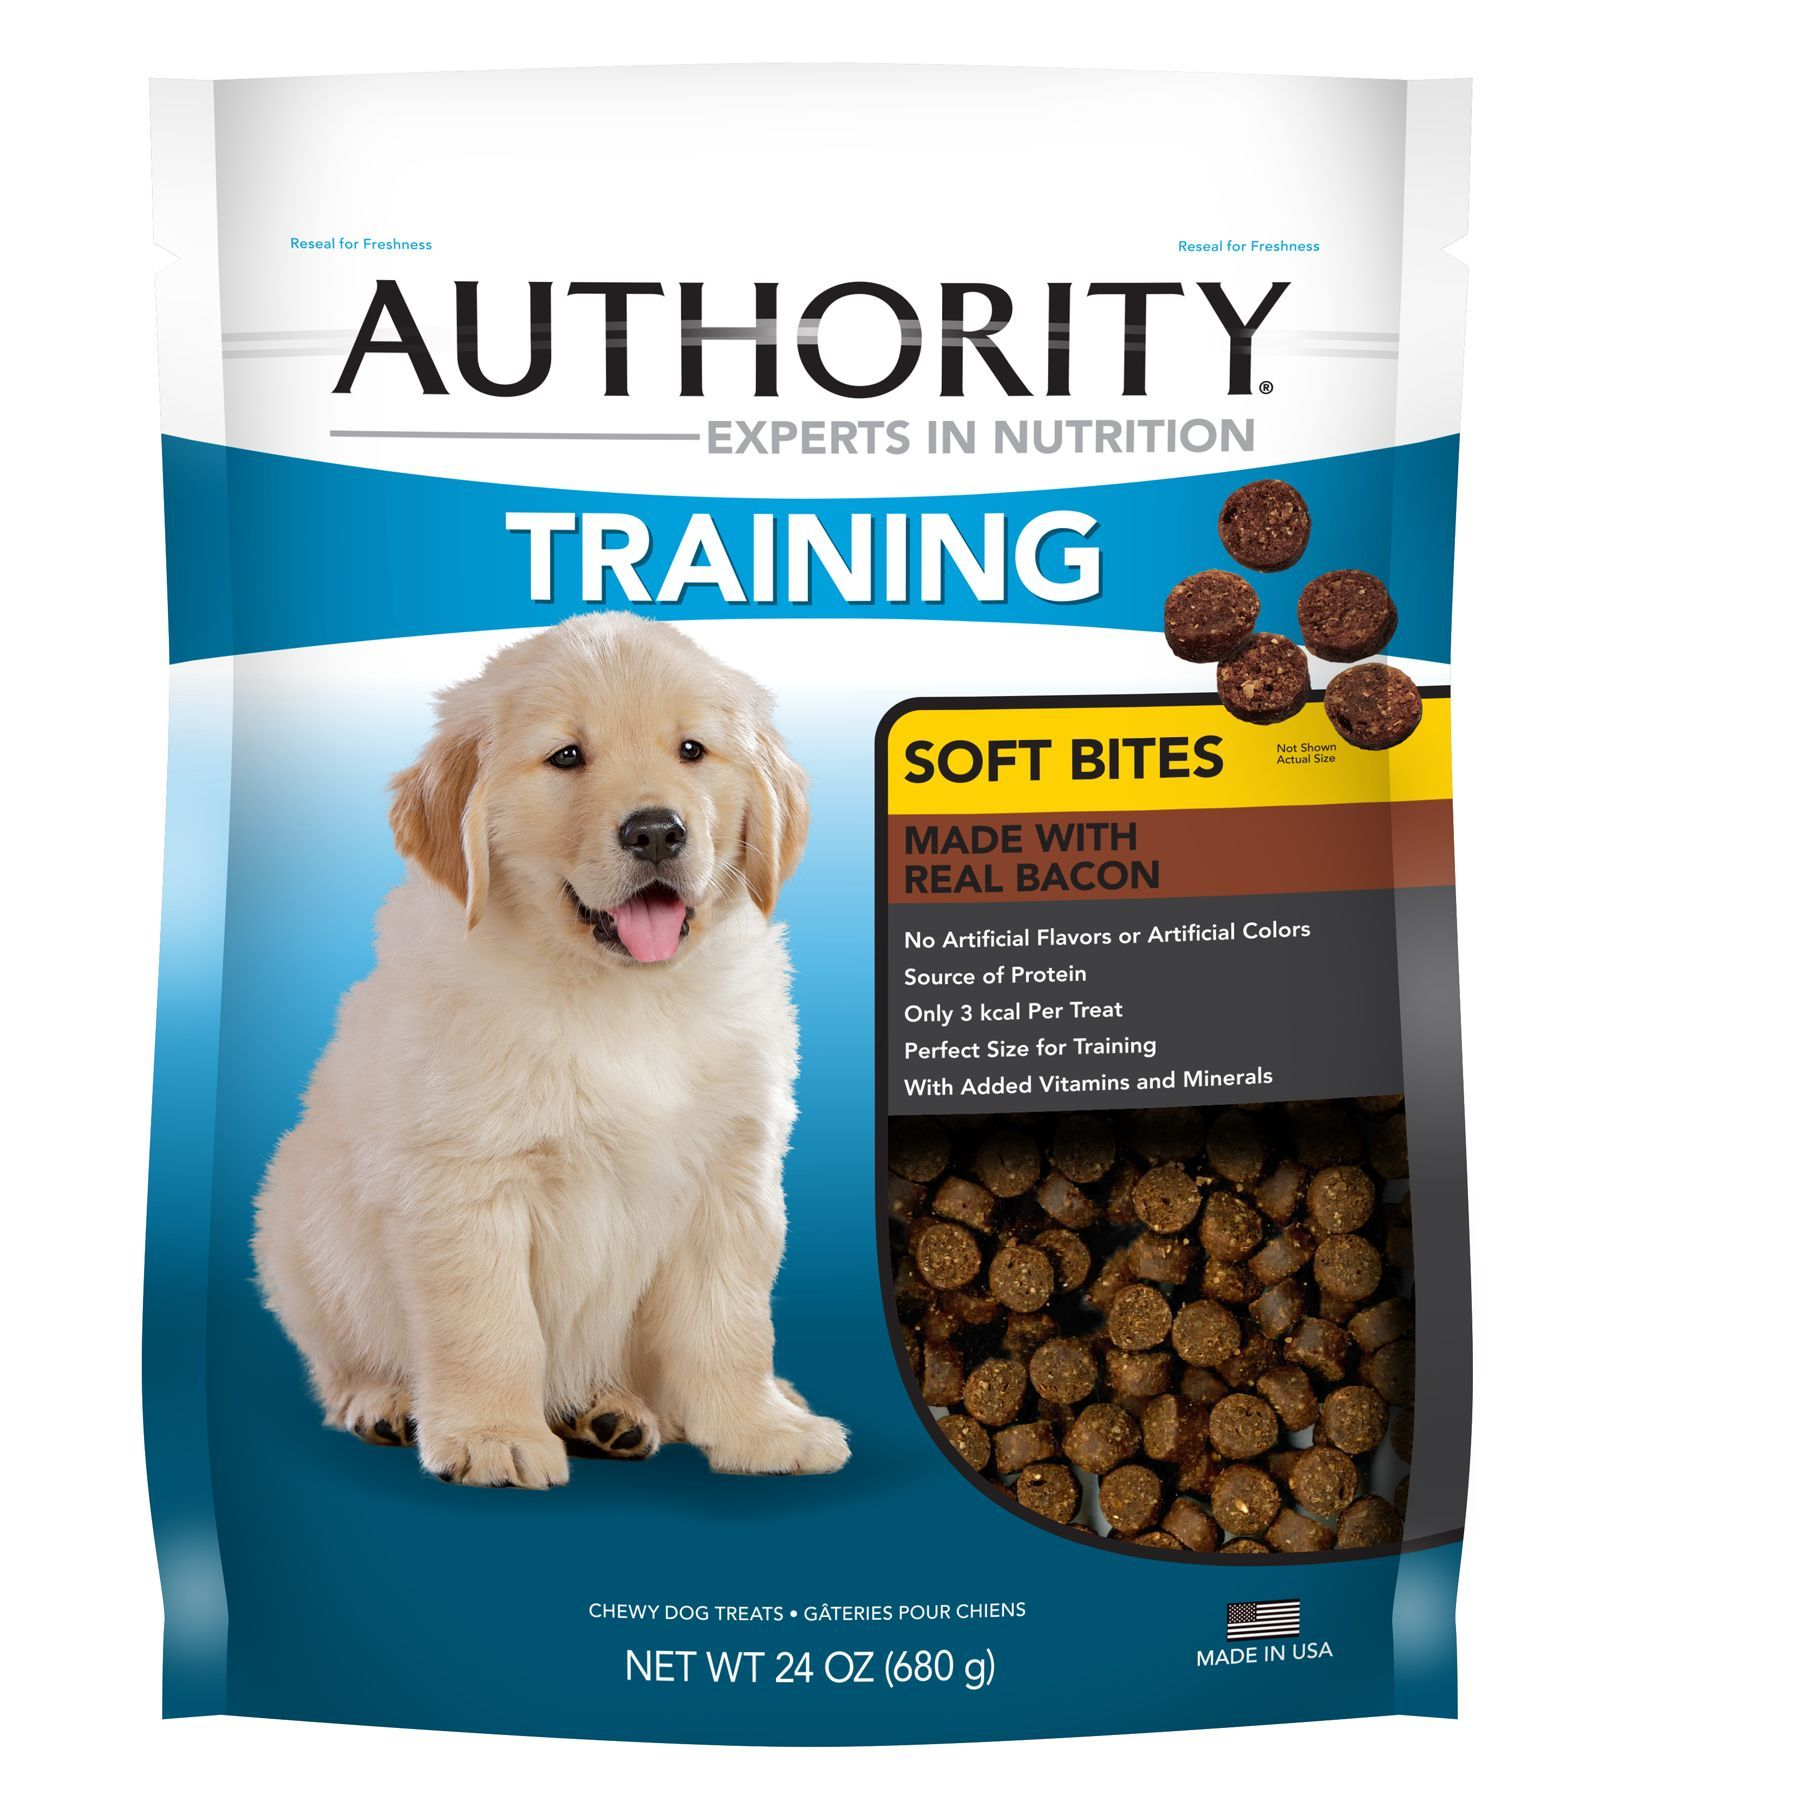 Authority Training Soft Bites Dog Treat Bacon Size 24 Oz Adult